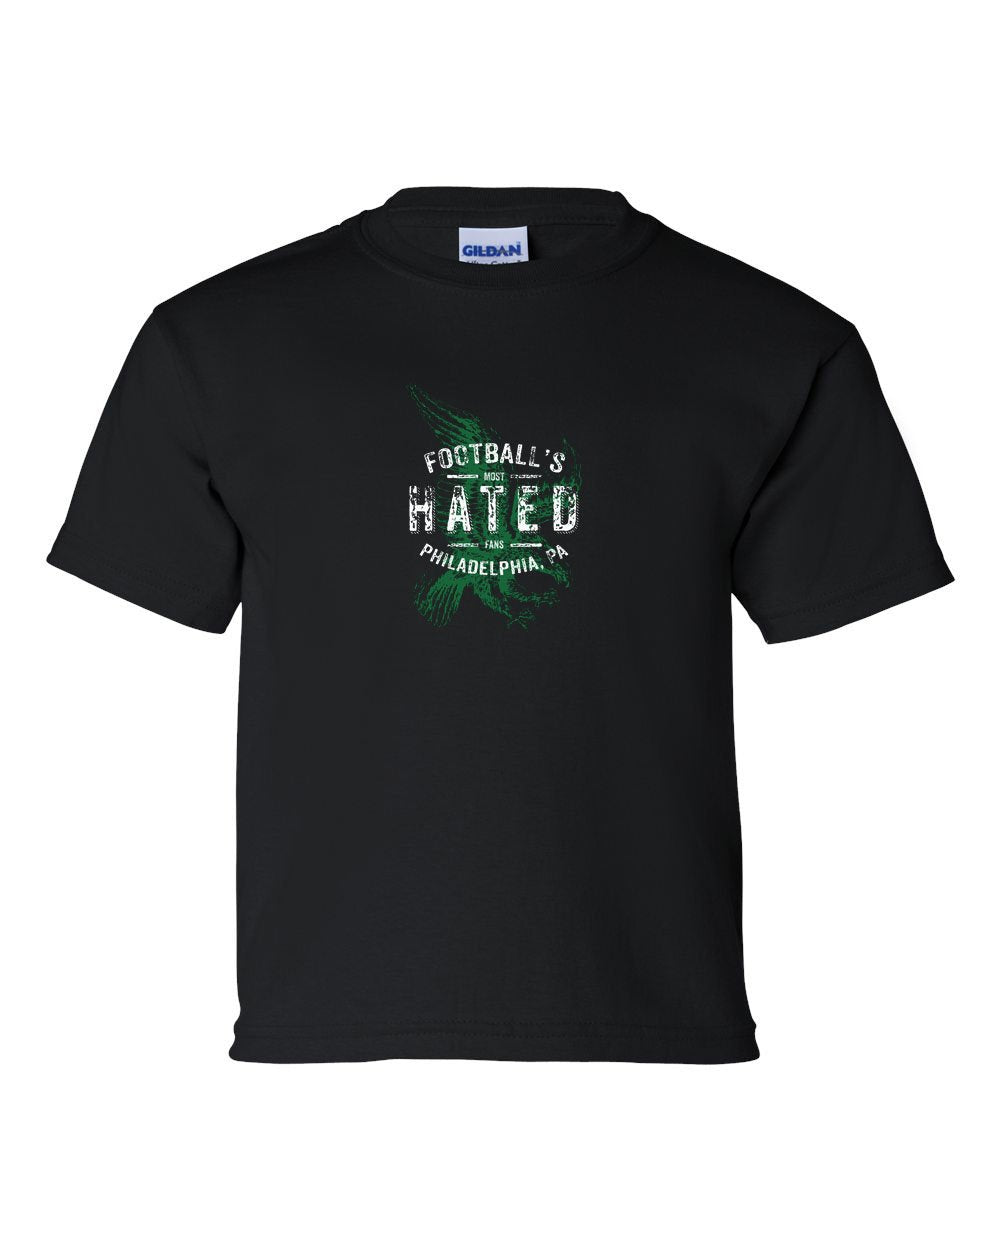 Most Hated Fans KIDS T-Shirt